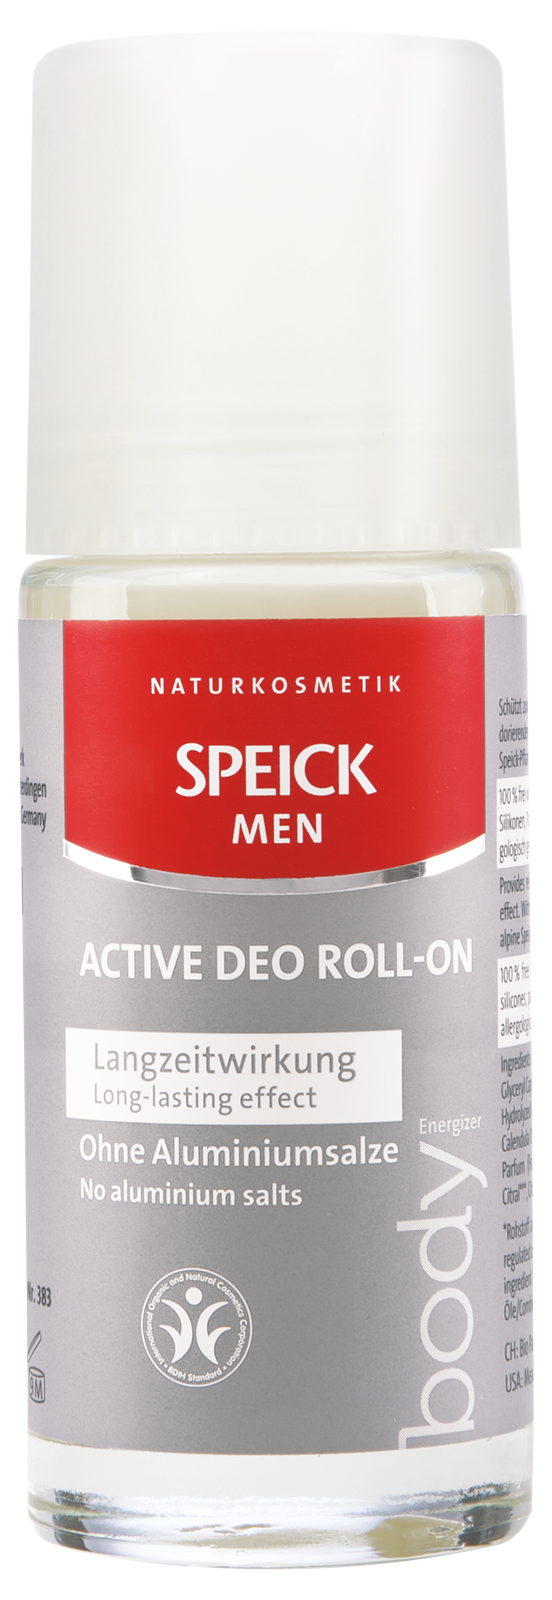 Speick Men Active Deo Roll-on 50ml